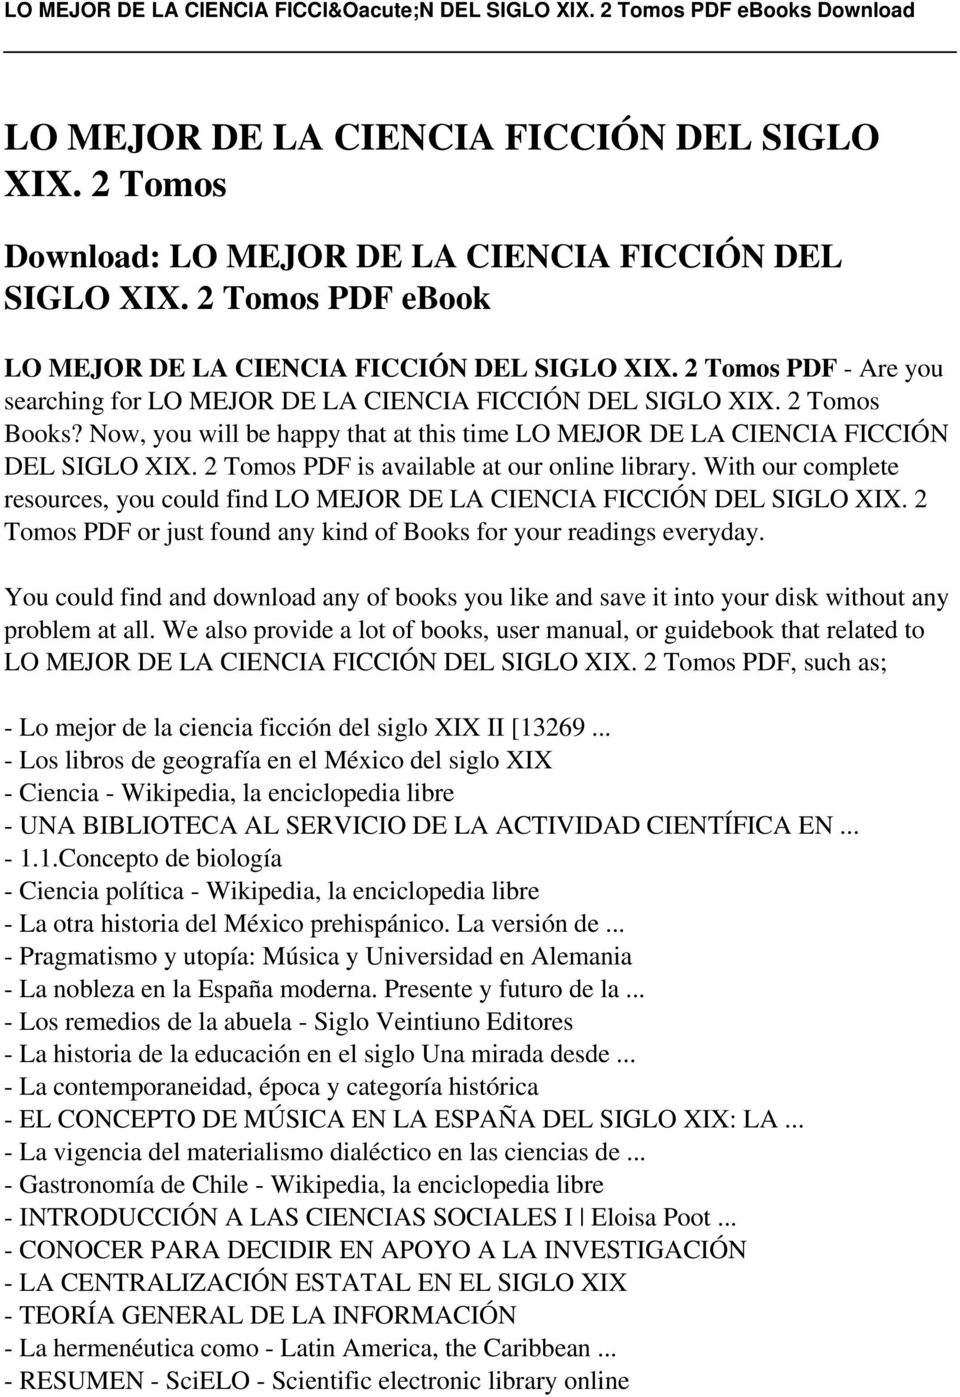 2 Tomos PDF is available at our online library. With our complete resources, you could find LO MEJOR DE LA CIENCIA FICCIÓN DEL SIGLO XIX.